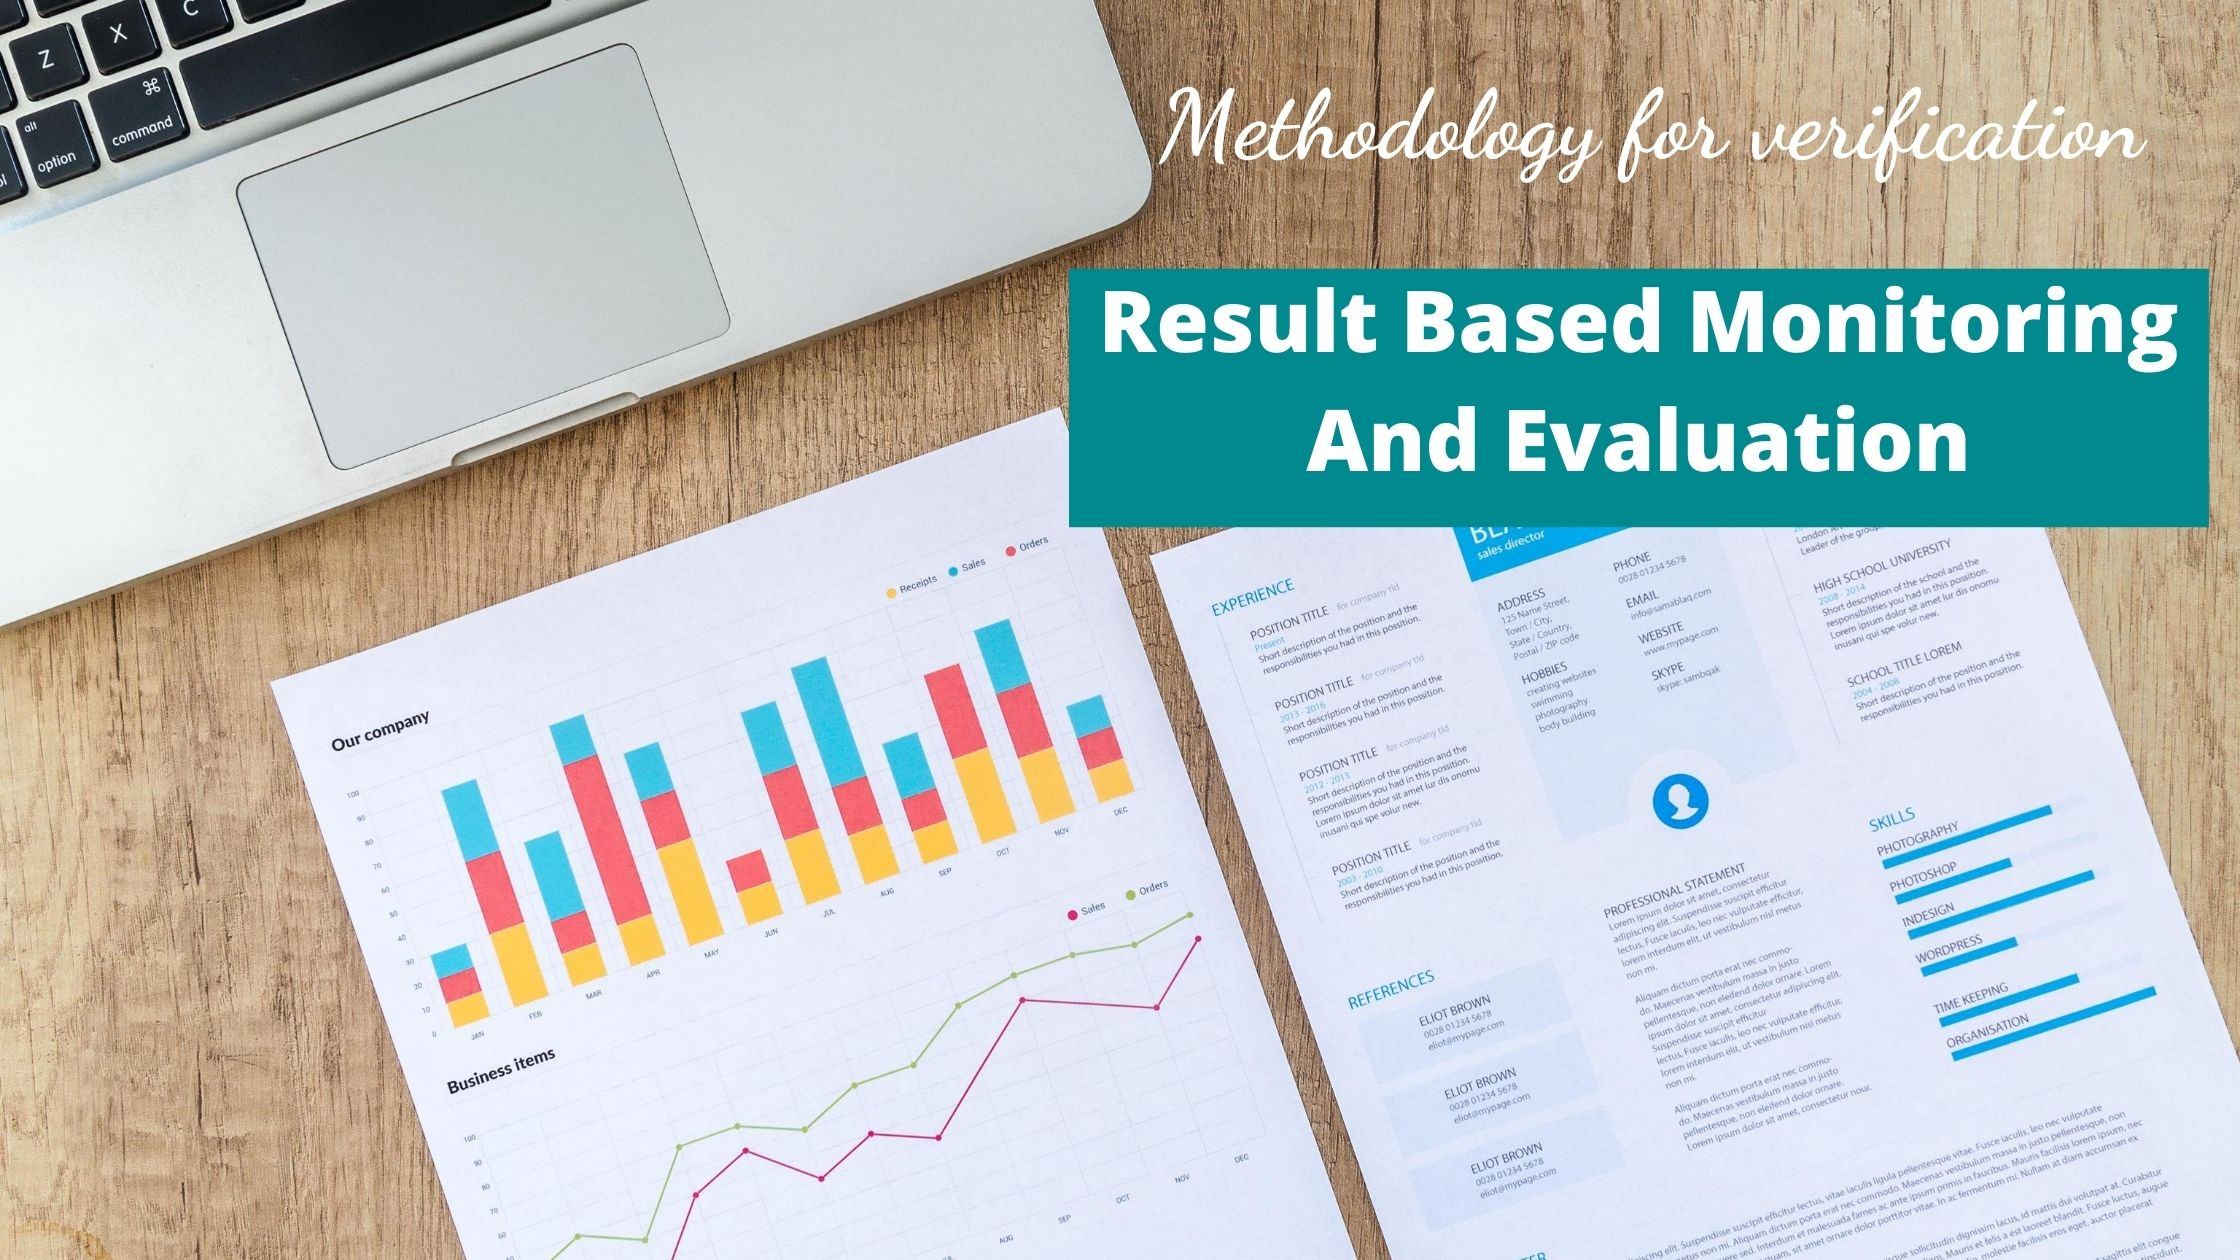 Result based monitoring and evaluation